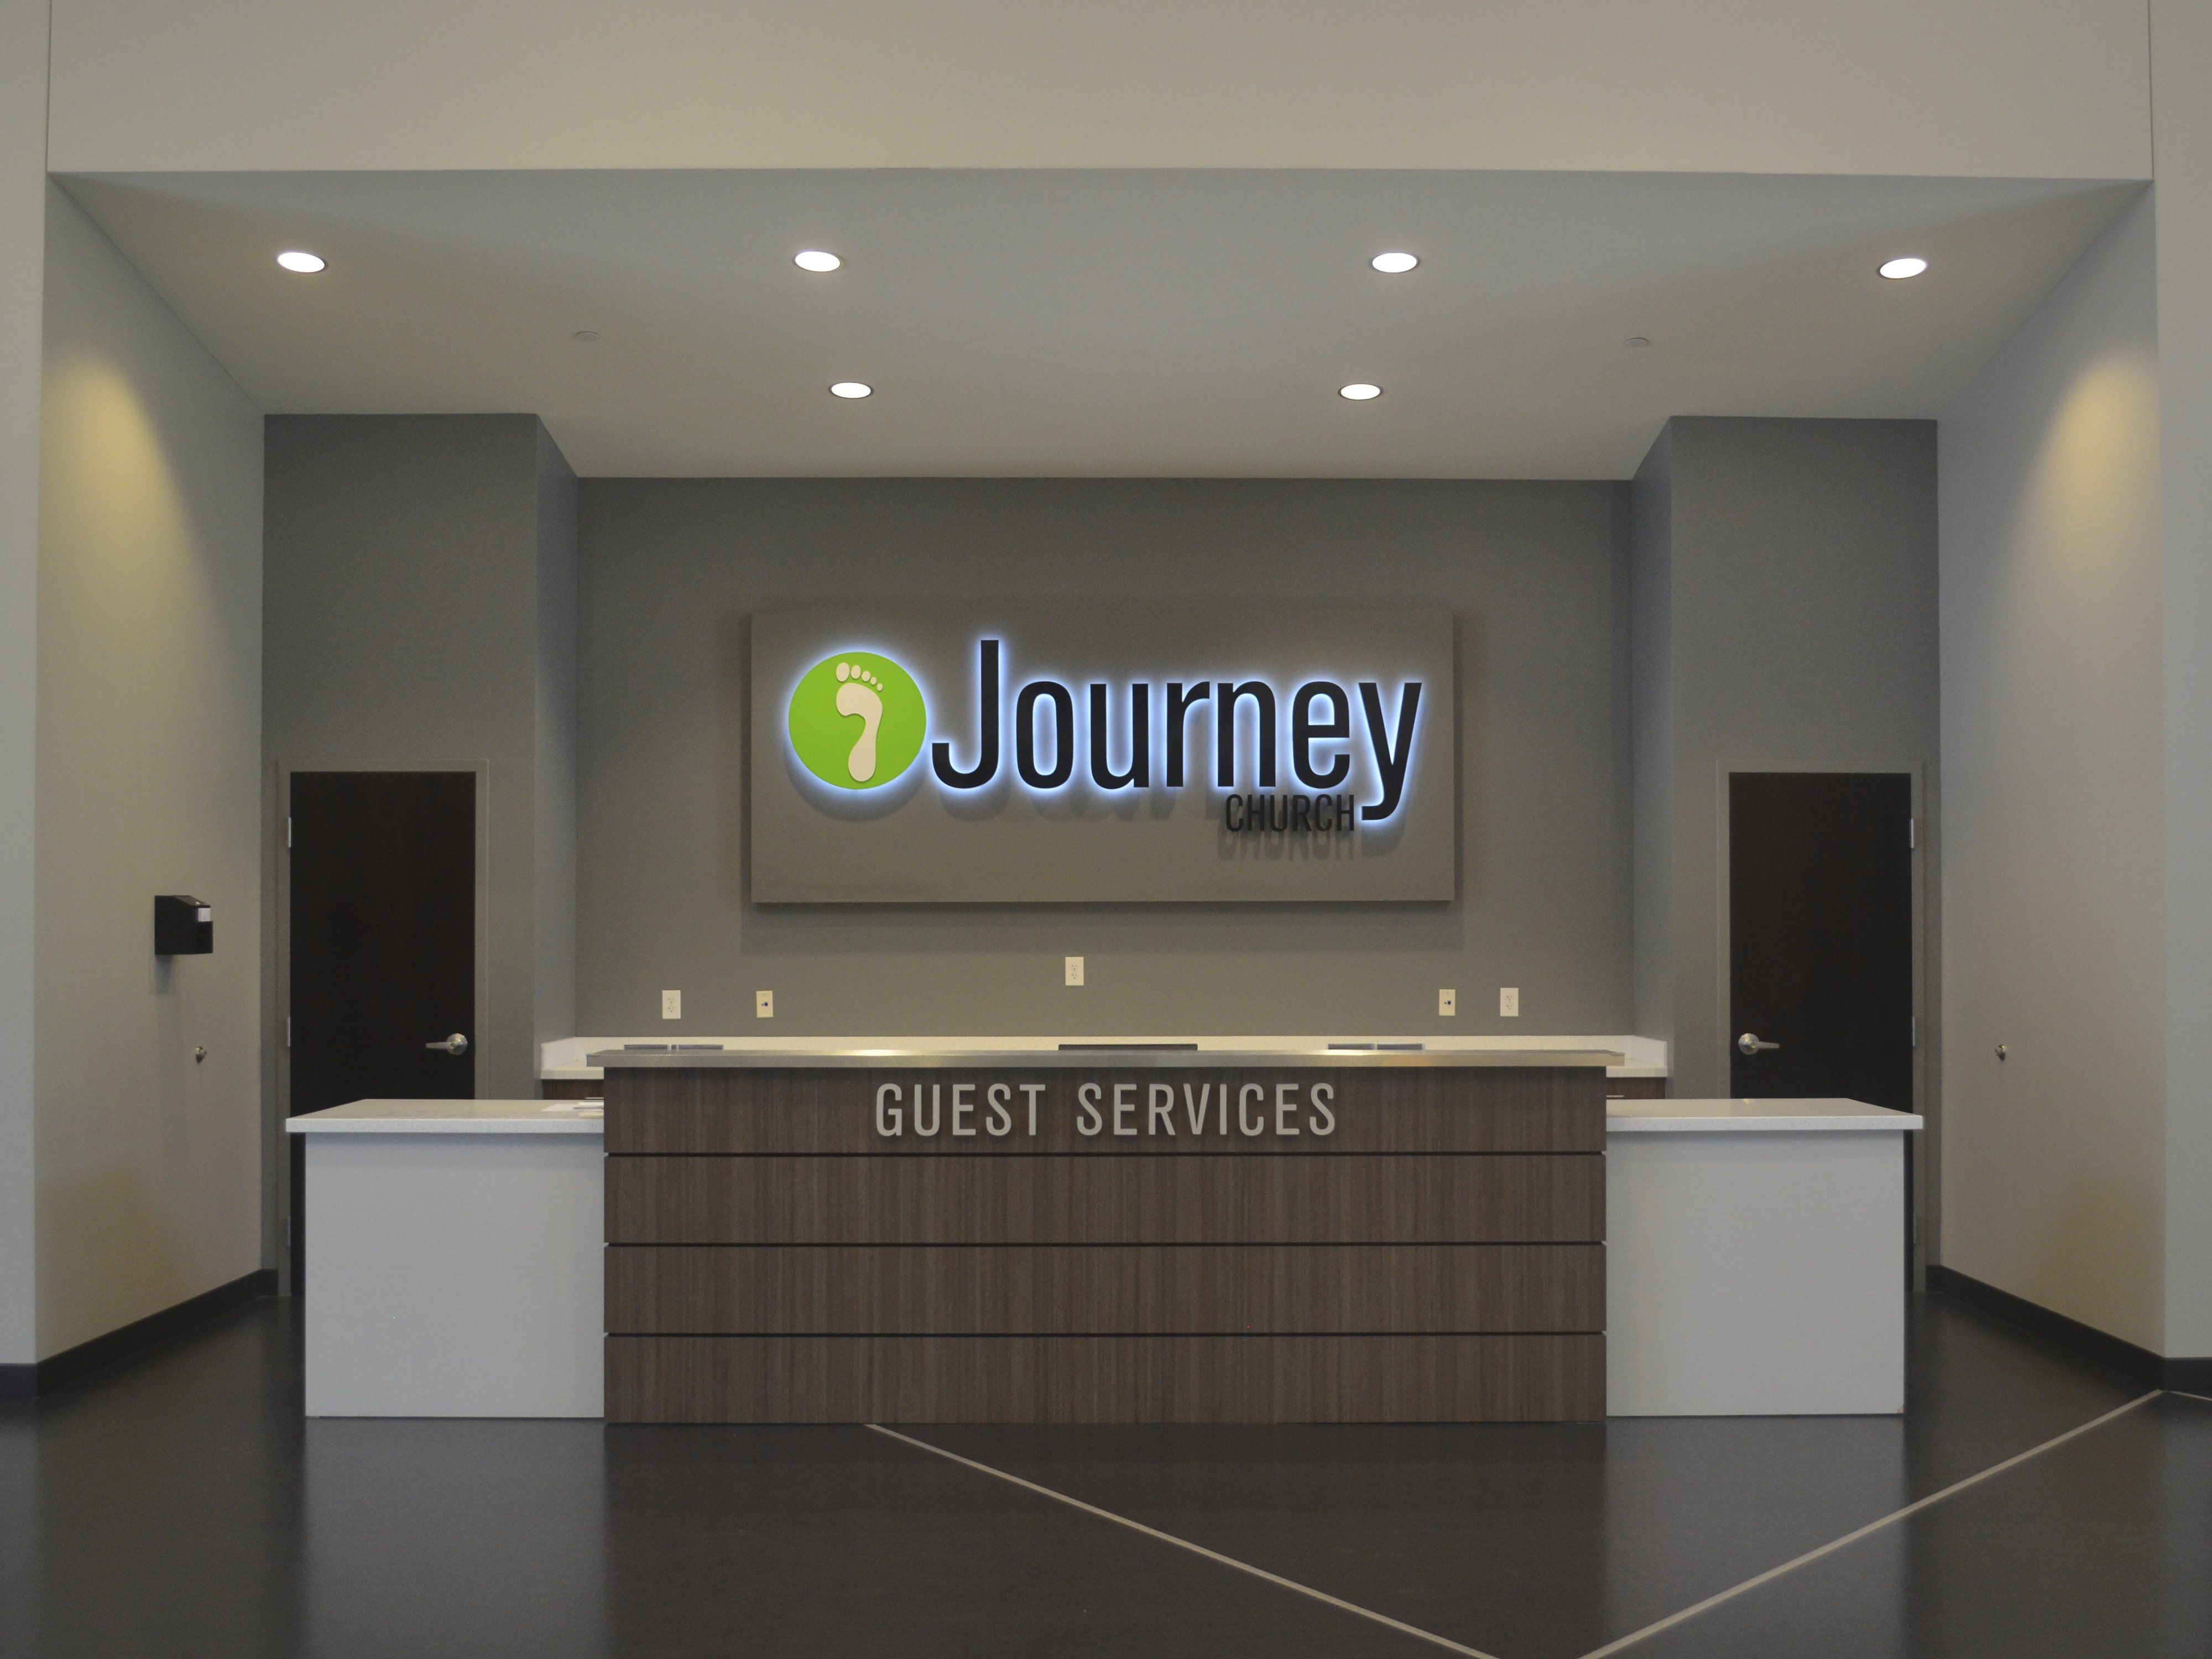 Journey Church Lobby Sign For Information Desk